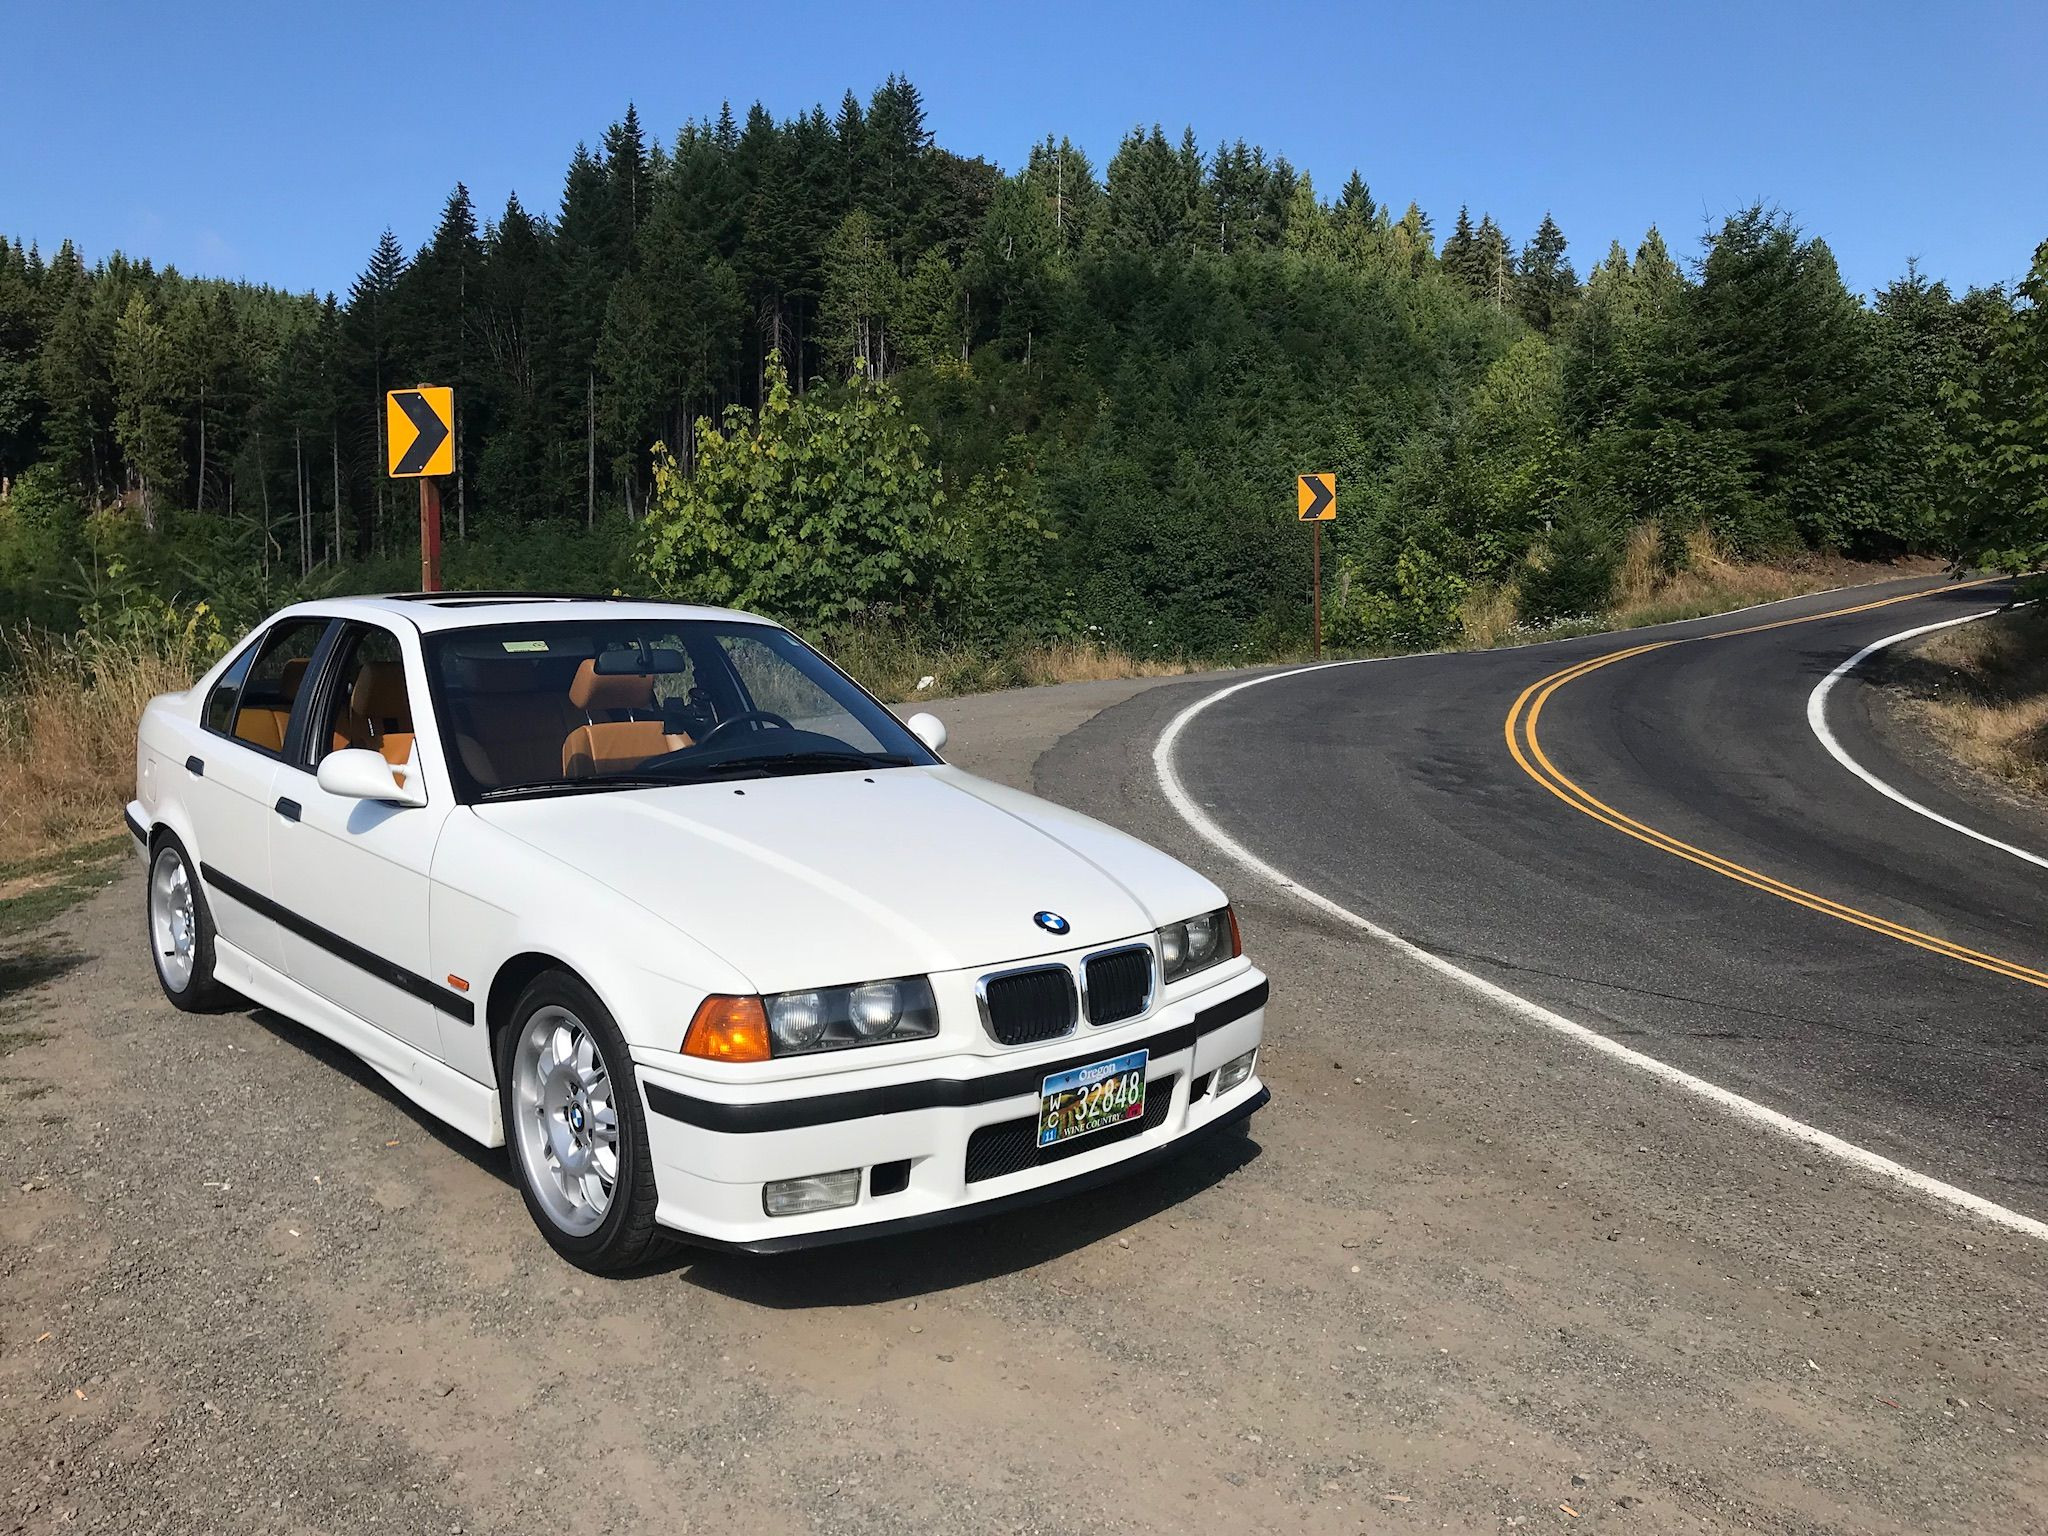 E36 M3 Alpine White With Modena Interior Avec Images Voiture